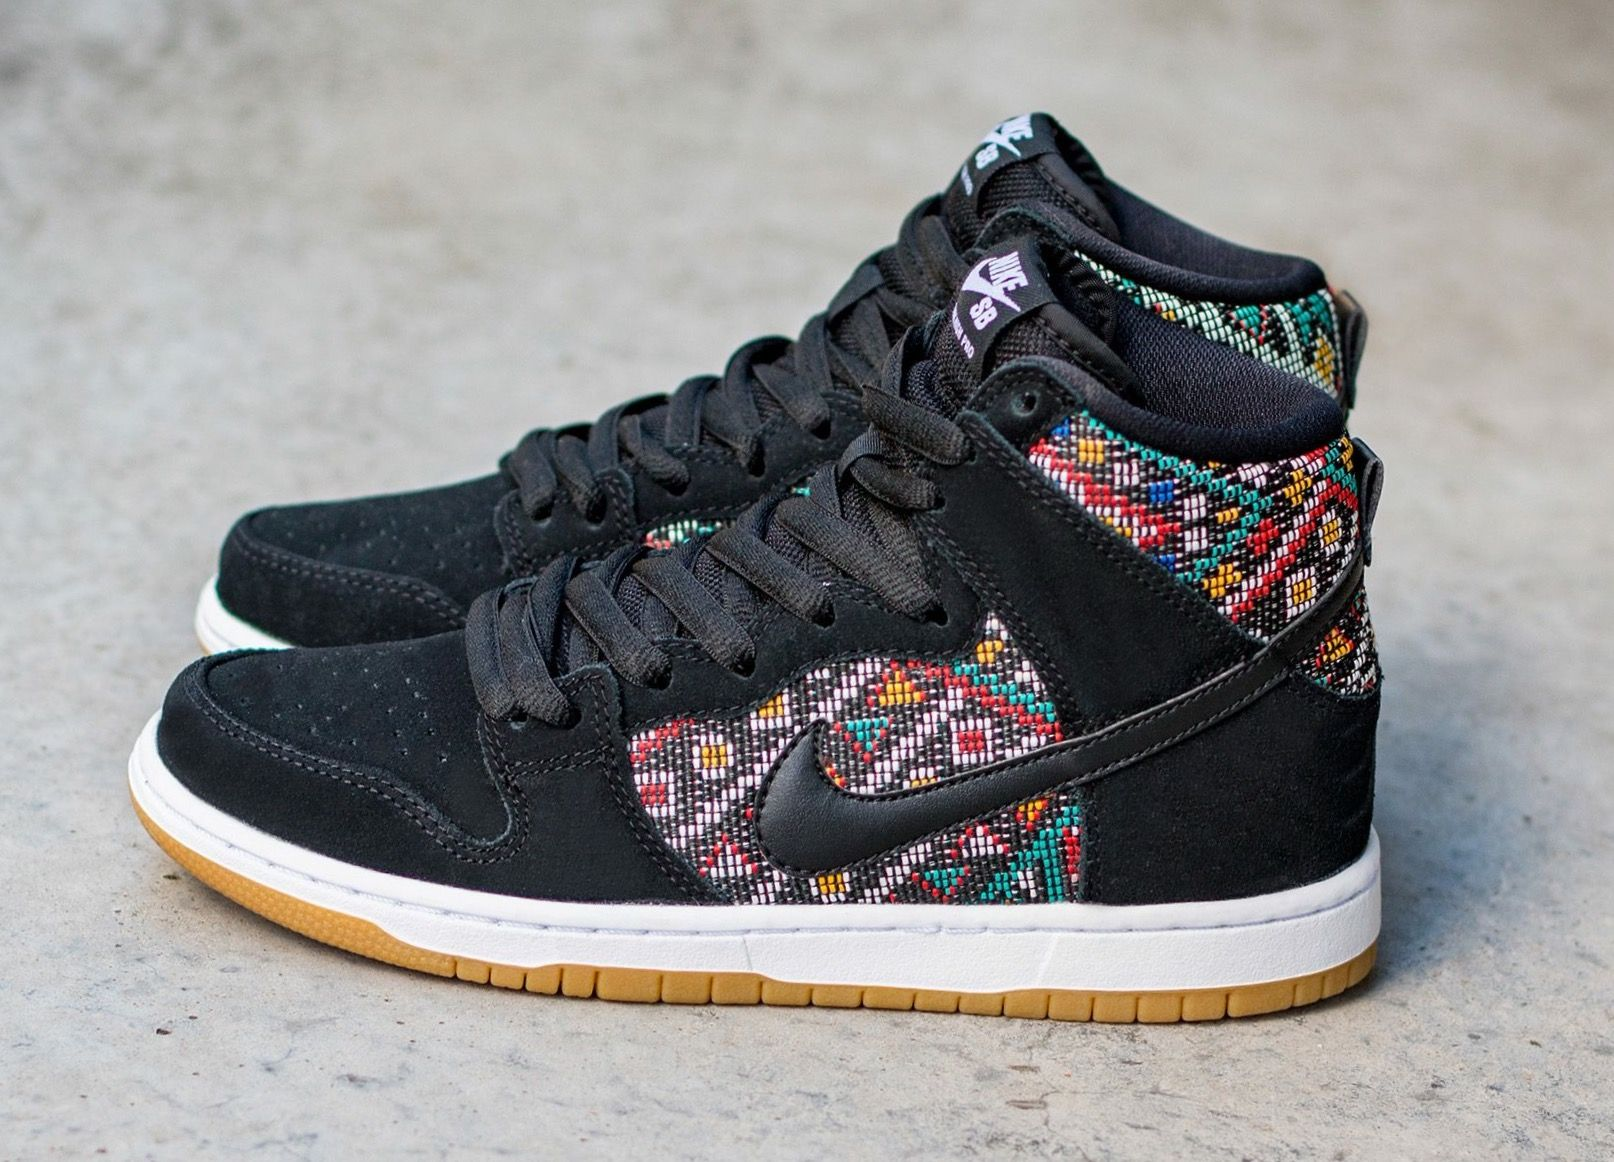 separation shoes 016b2 f5e44 ... Nike Dunk High Swoosh Social Club Duck Hunt Sole Collector Kicks  Pinterest Nike dunks, ...